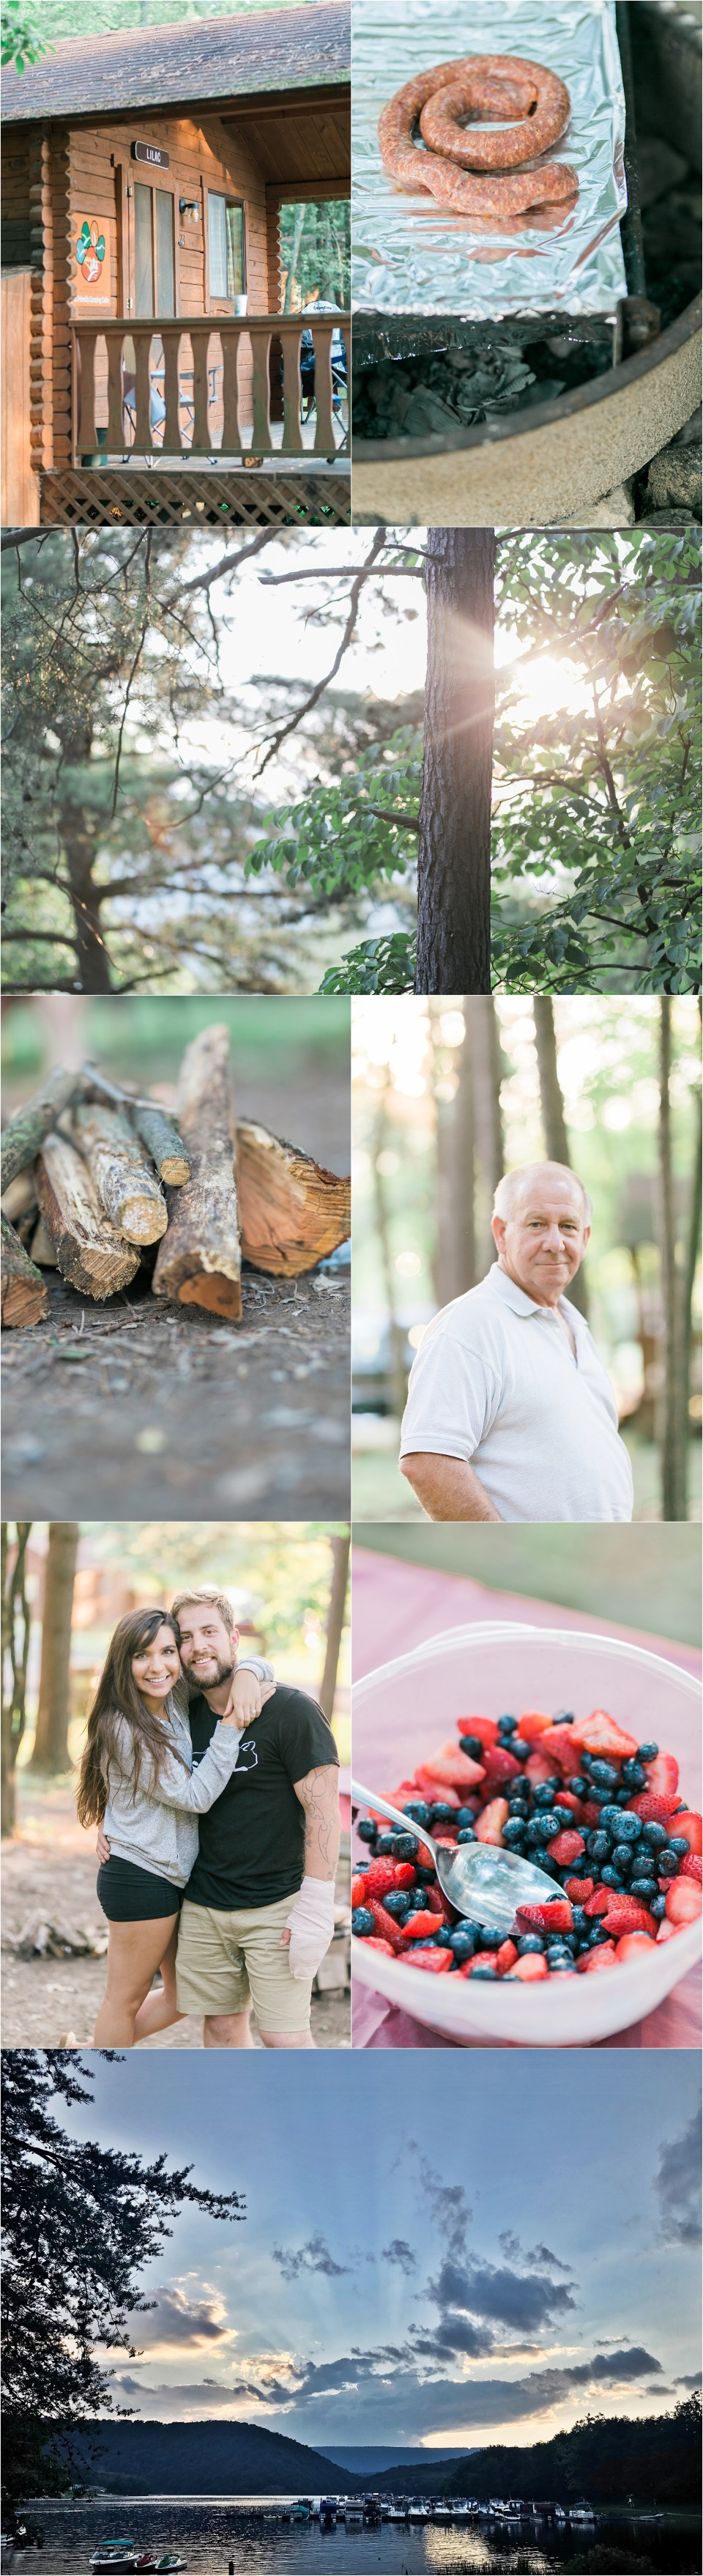 lake raystown, pennsylvania, family reunion, costola photography